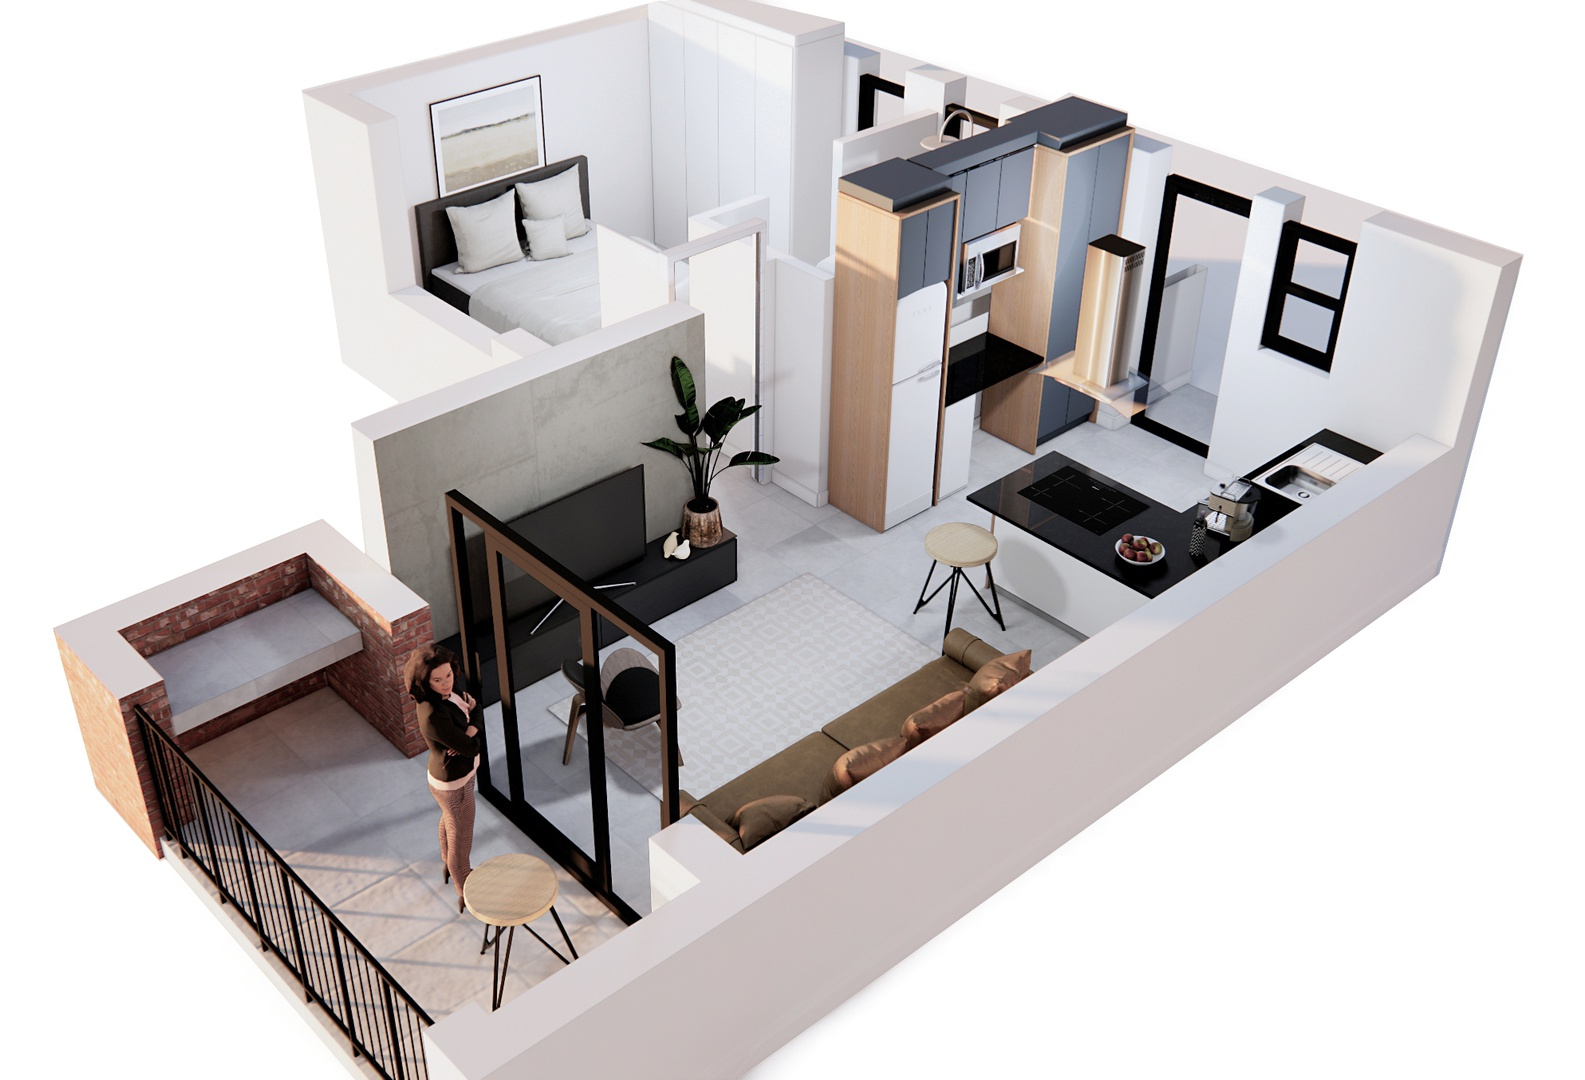 Apartment in Pinelands - Unit A Perspective.jpg